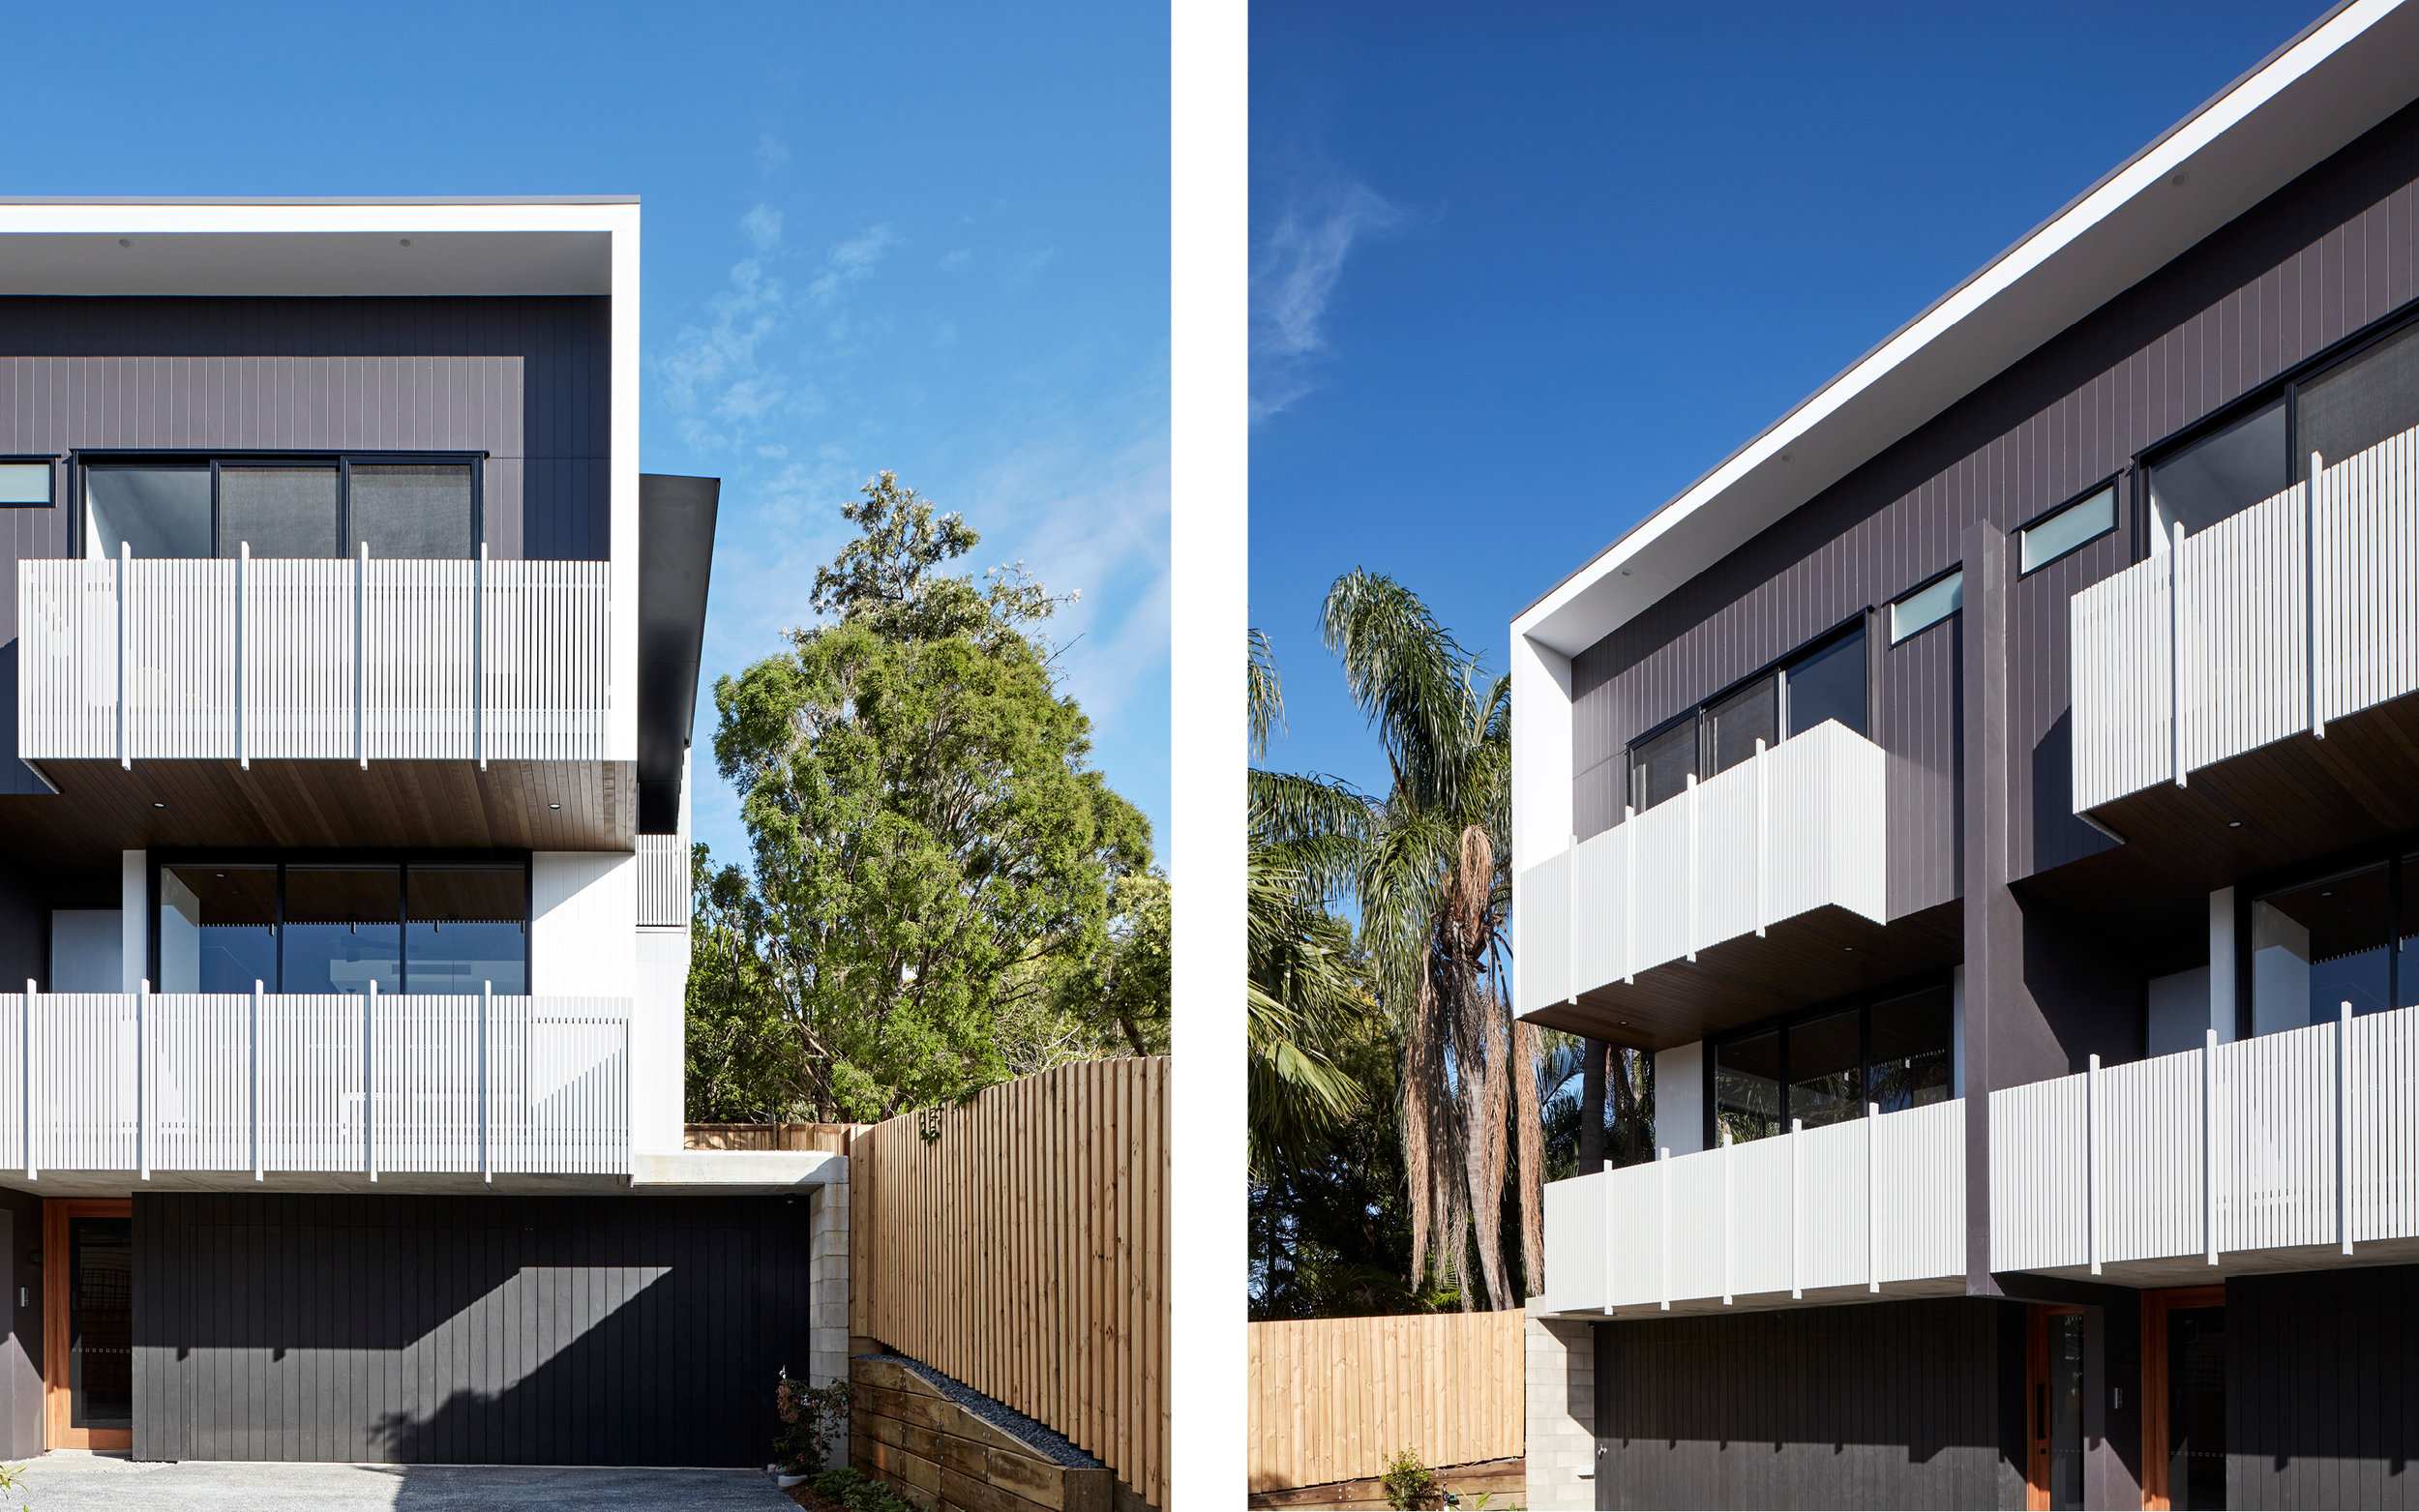 A combination of lightweight cladding and batten balustrades takes reference to the Queensland vernacular